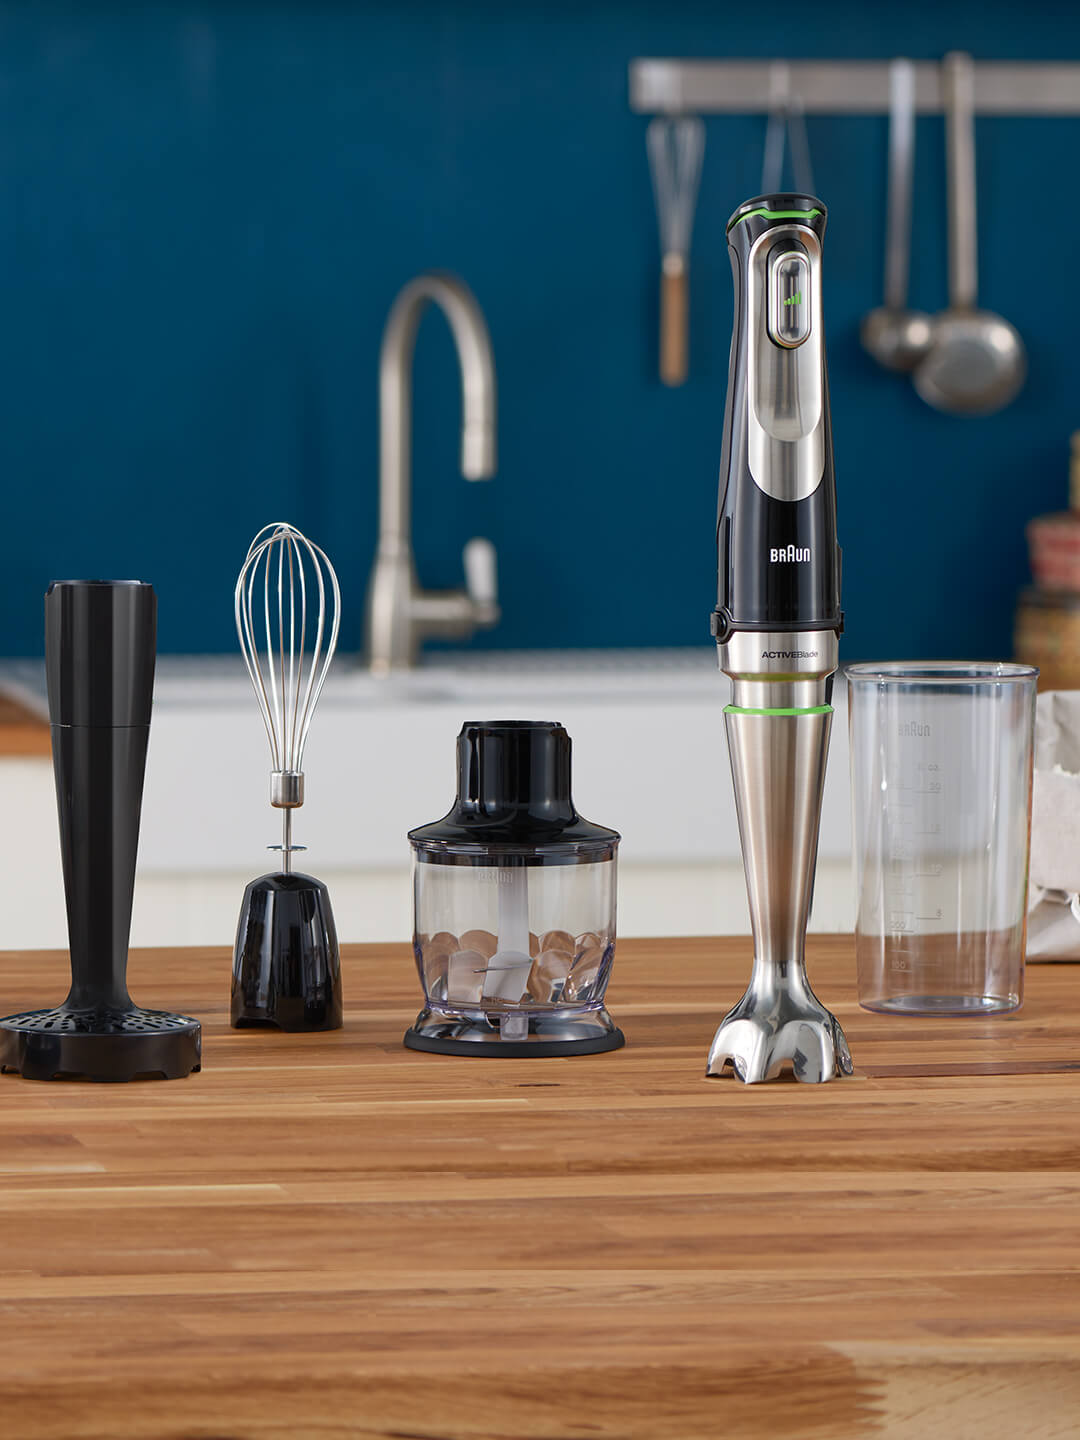 Braun MQ 9 Hand blender with attachments